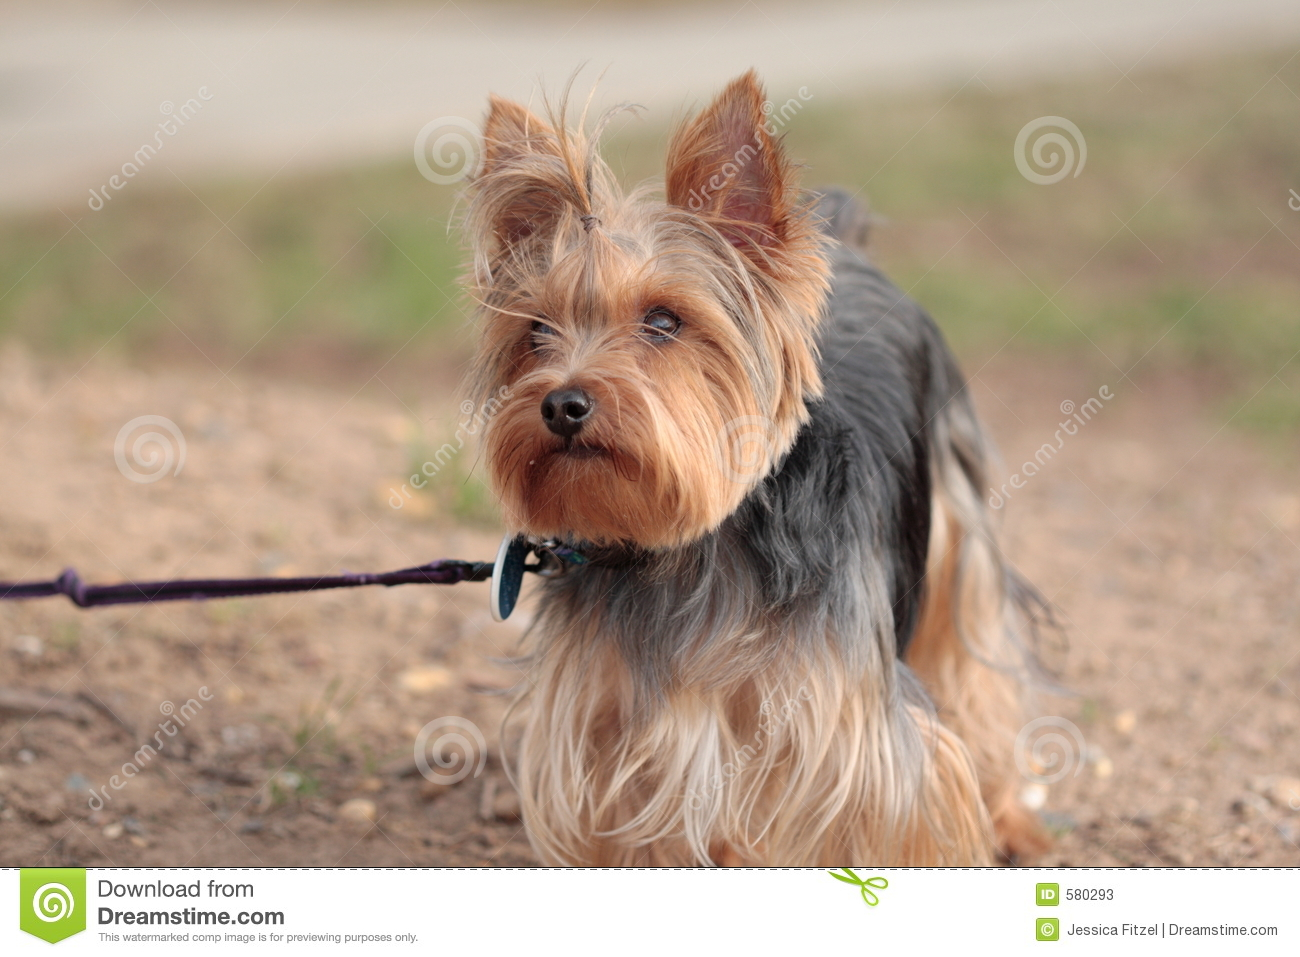 Yorkie Dog On Leash Ready To Go For A Walk